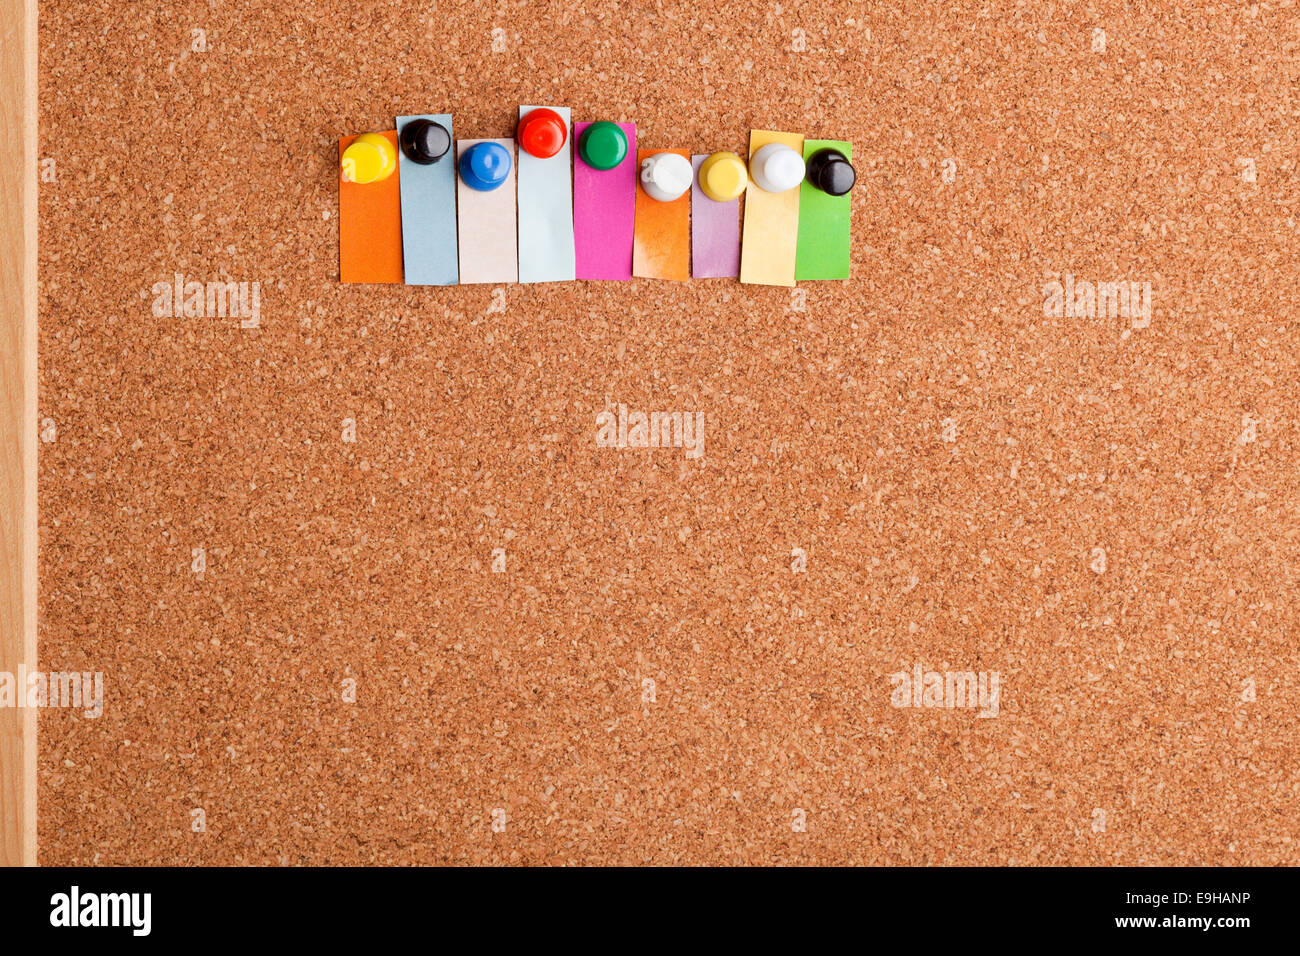 cork board and colorful heading with copyspace for a nine letter word